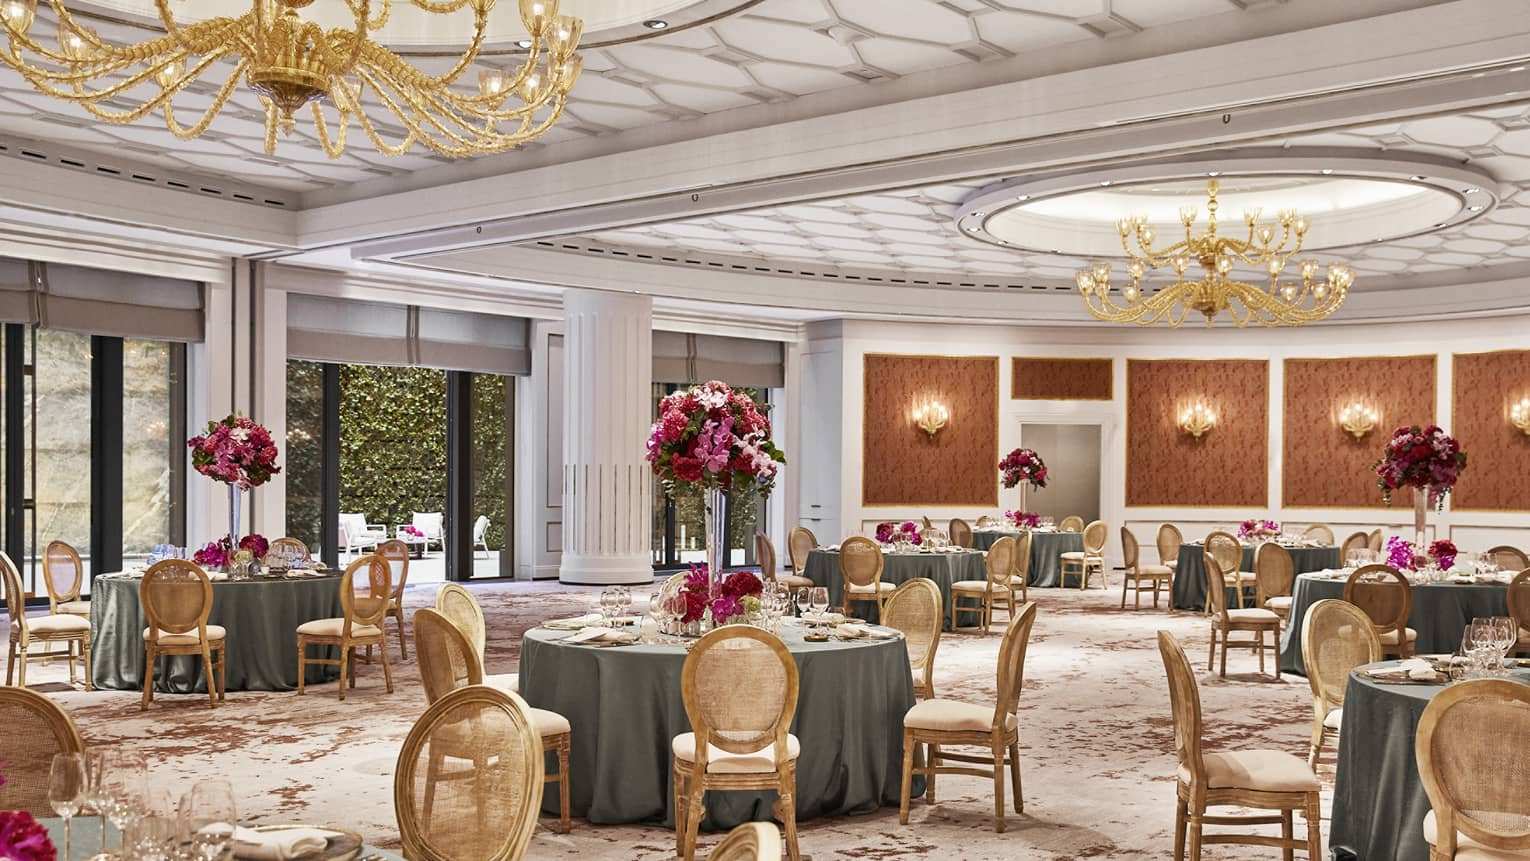 Ballroom with round tables, gold chairs, gold chandeliers, pattern carpeting, wall sconces